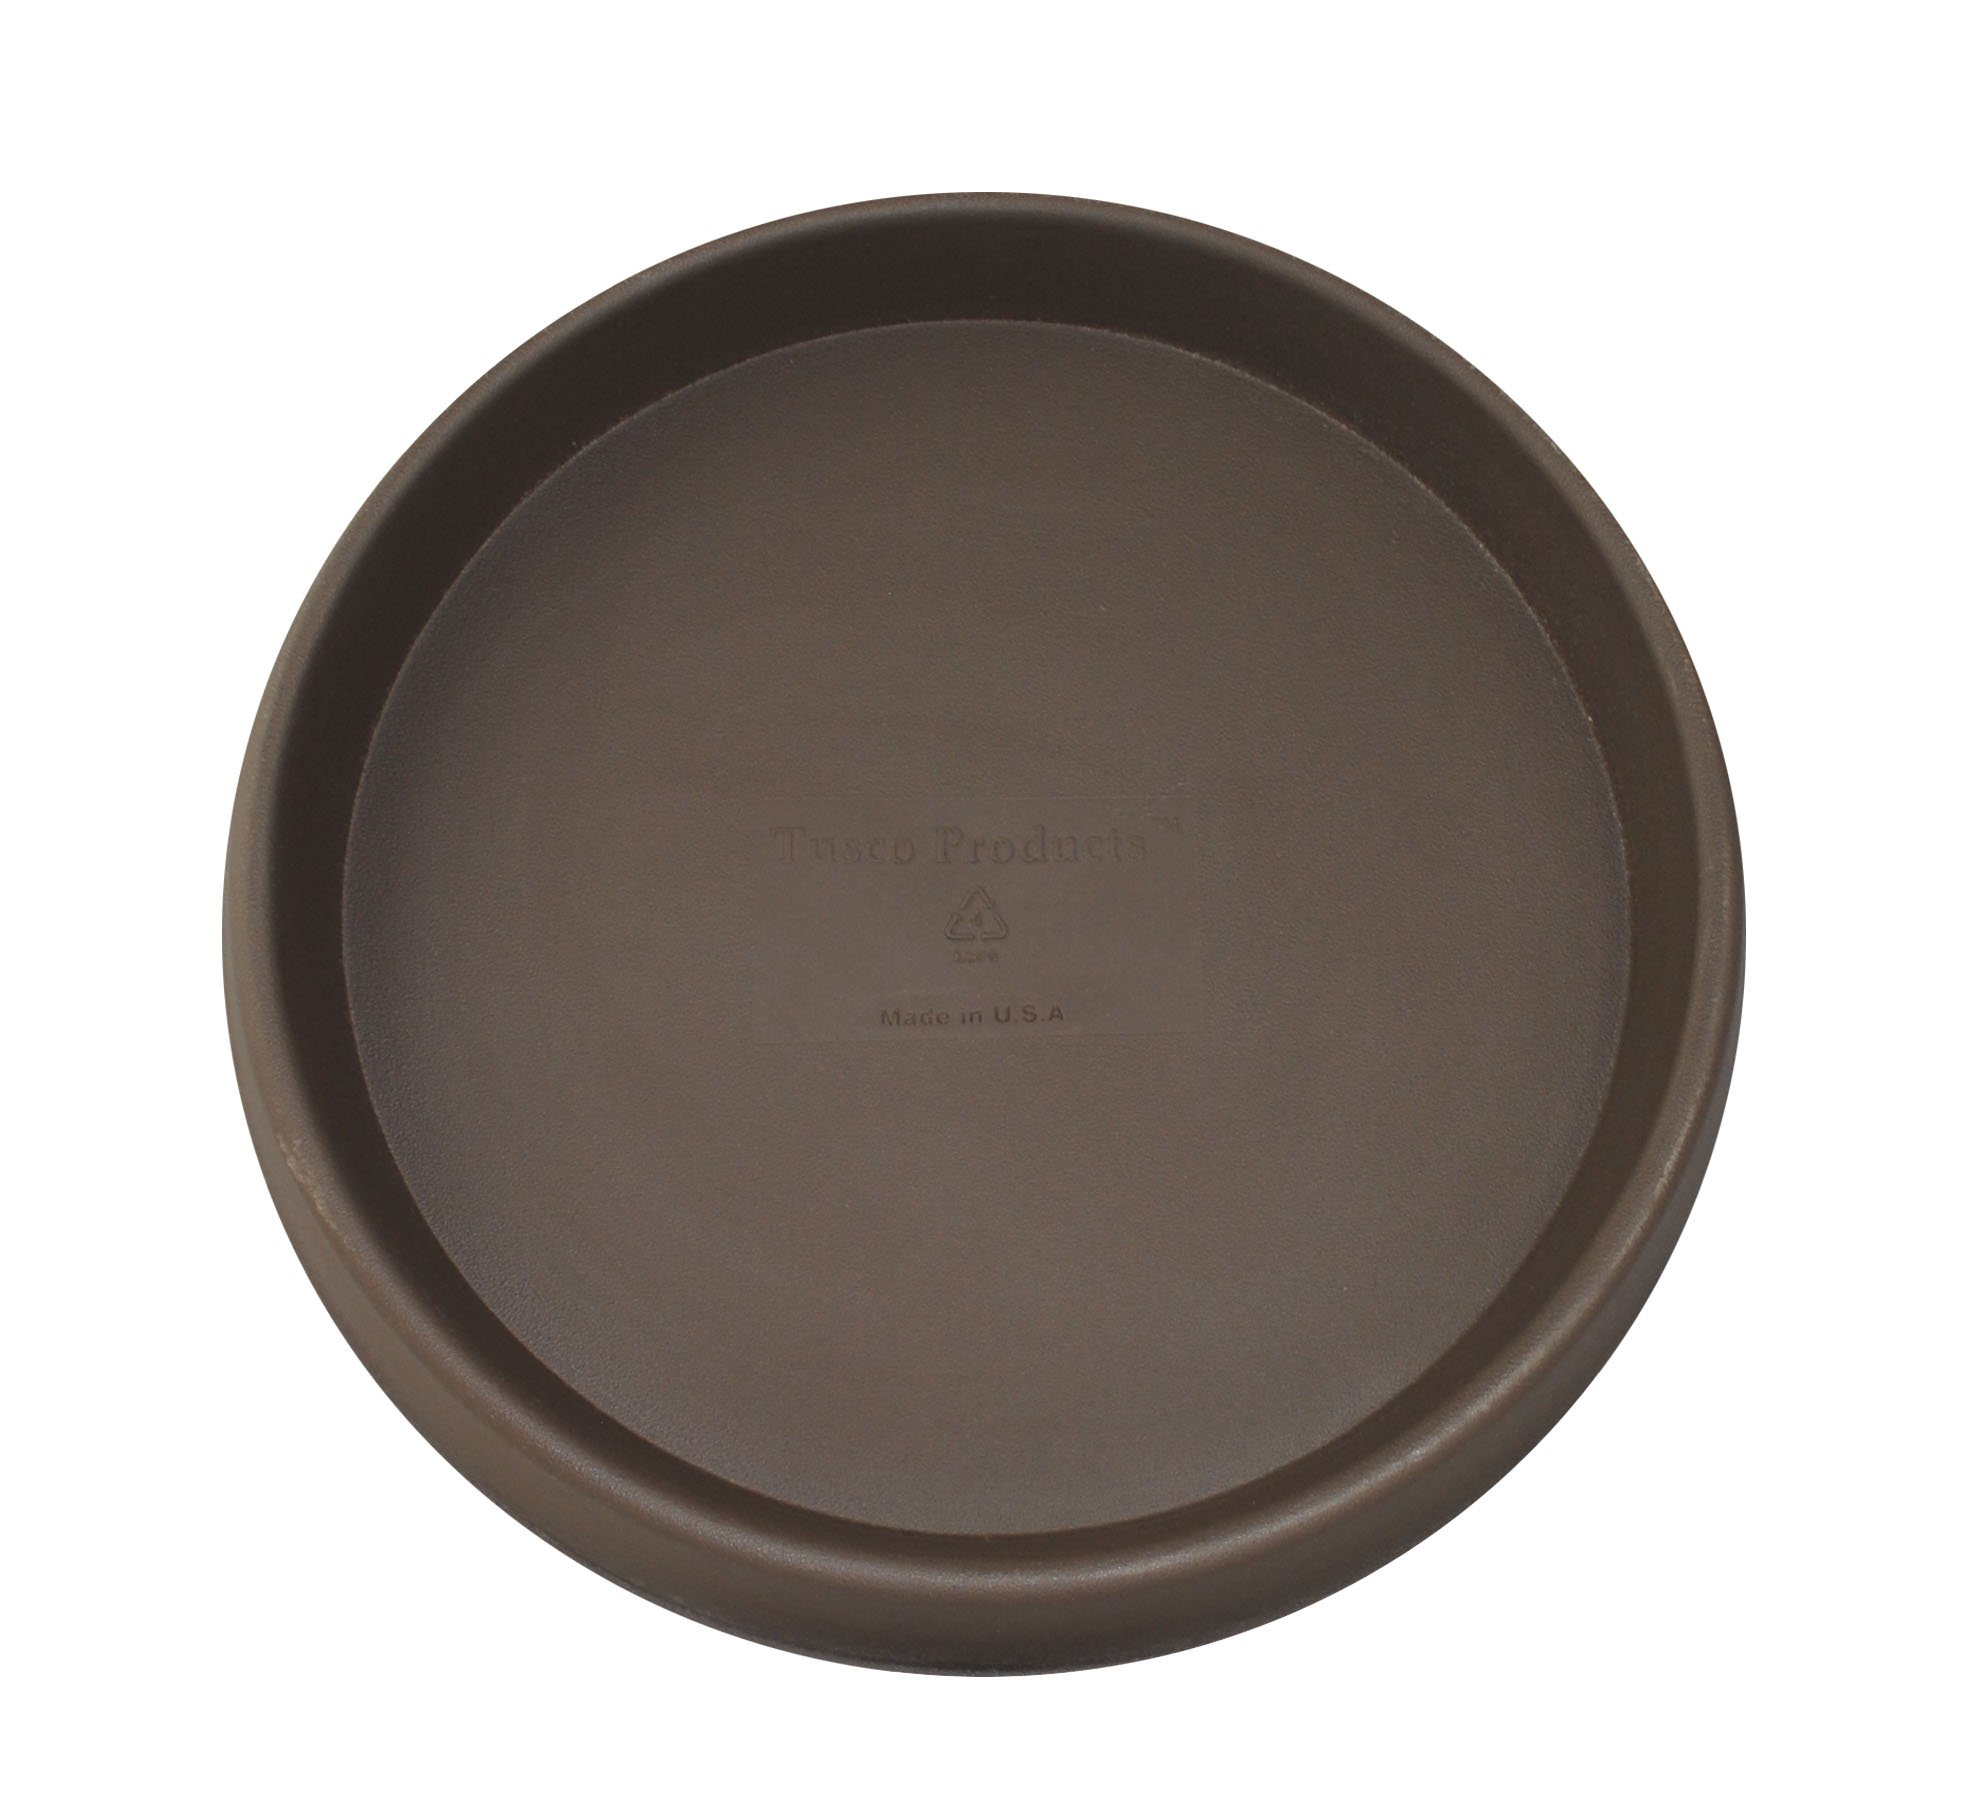 Tusco Products TR18ES Round Saucer, 18-Inch Diameter, Espresso by Tusco Products